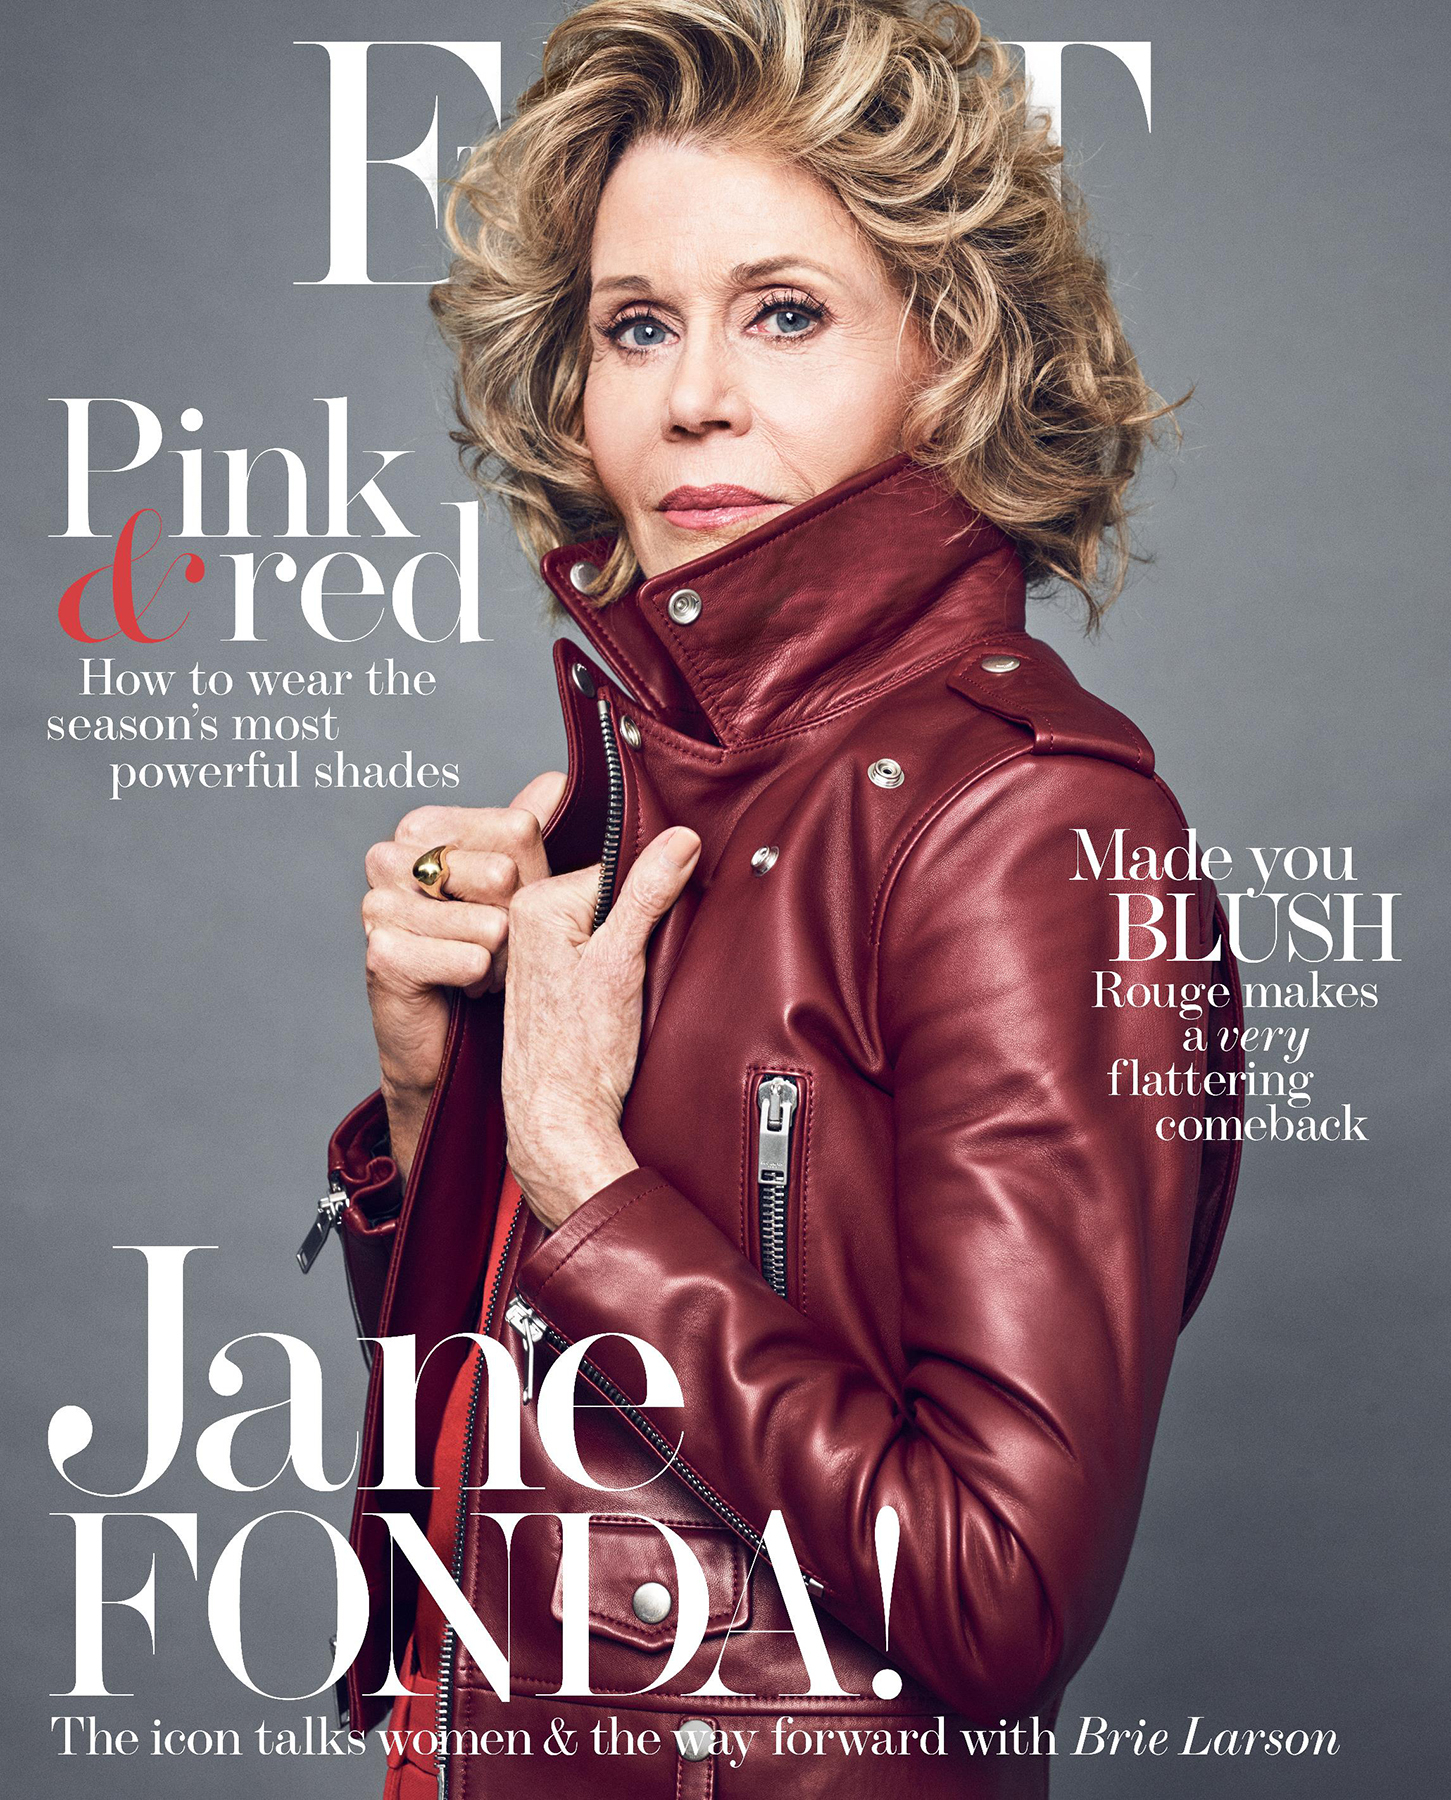 Jane Fonda on the cover of THE EDIT